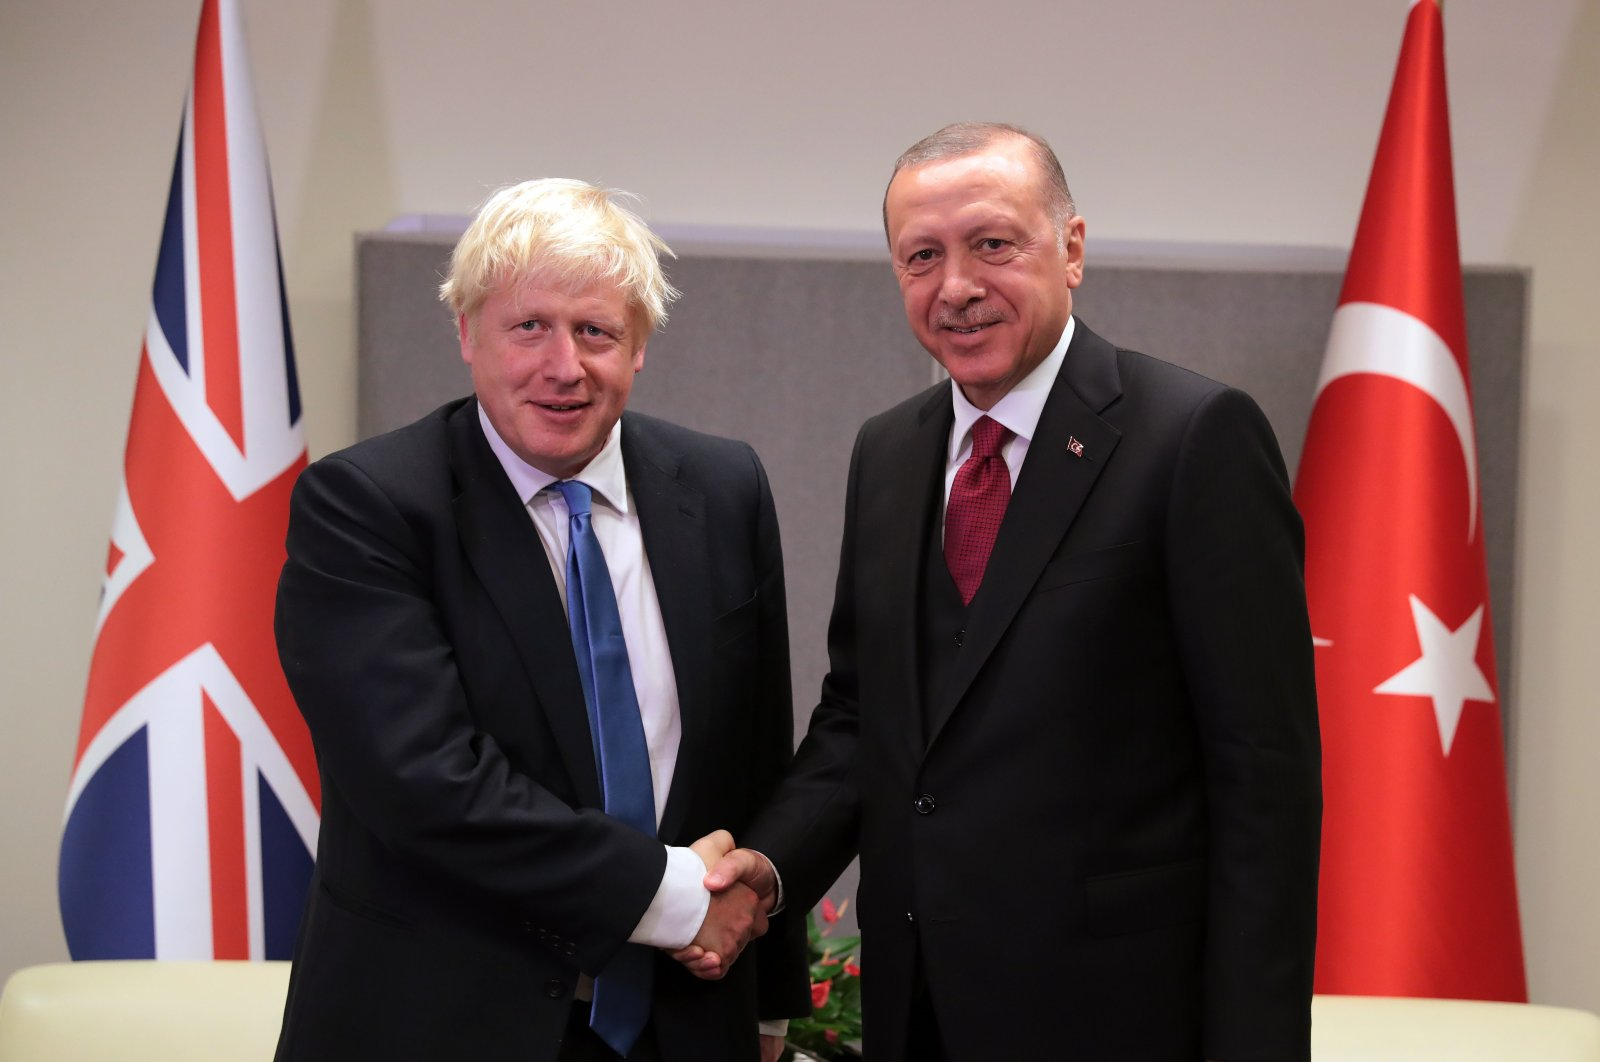 President Recep Tayyip Erdoğan and British Prime Minister Boris Johnson shake hands in a meeting on the sidelines of the 74th General Assembly of the United Nations, New York City, U.S., September 2019. (IHA Photo)